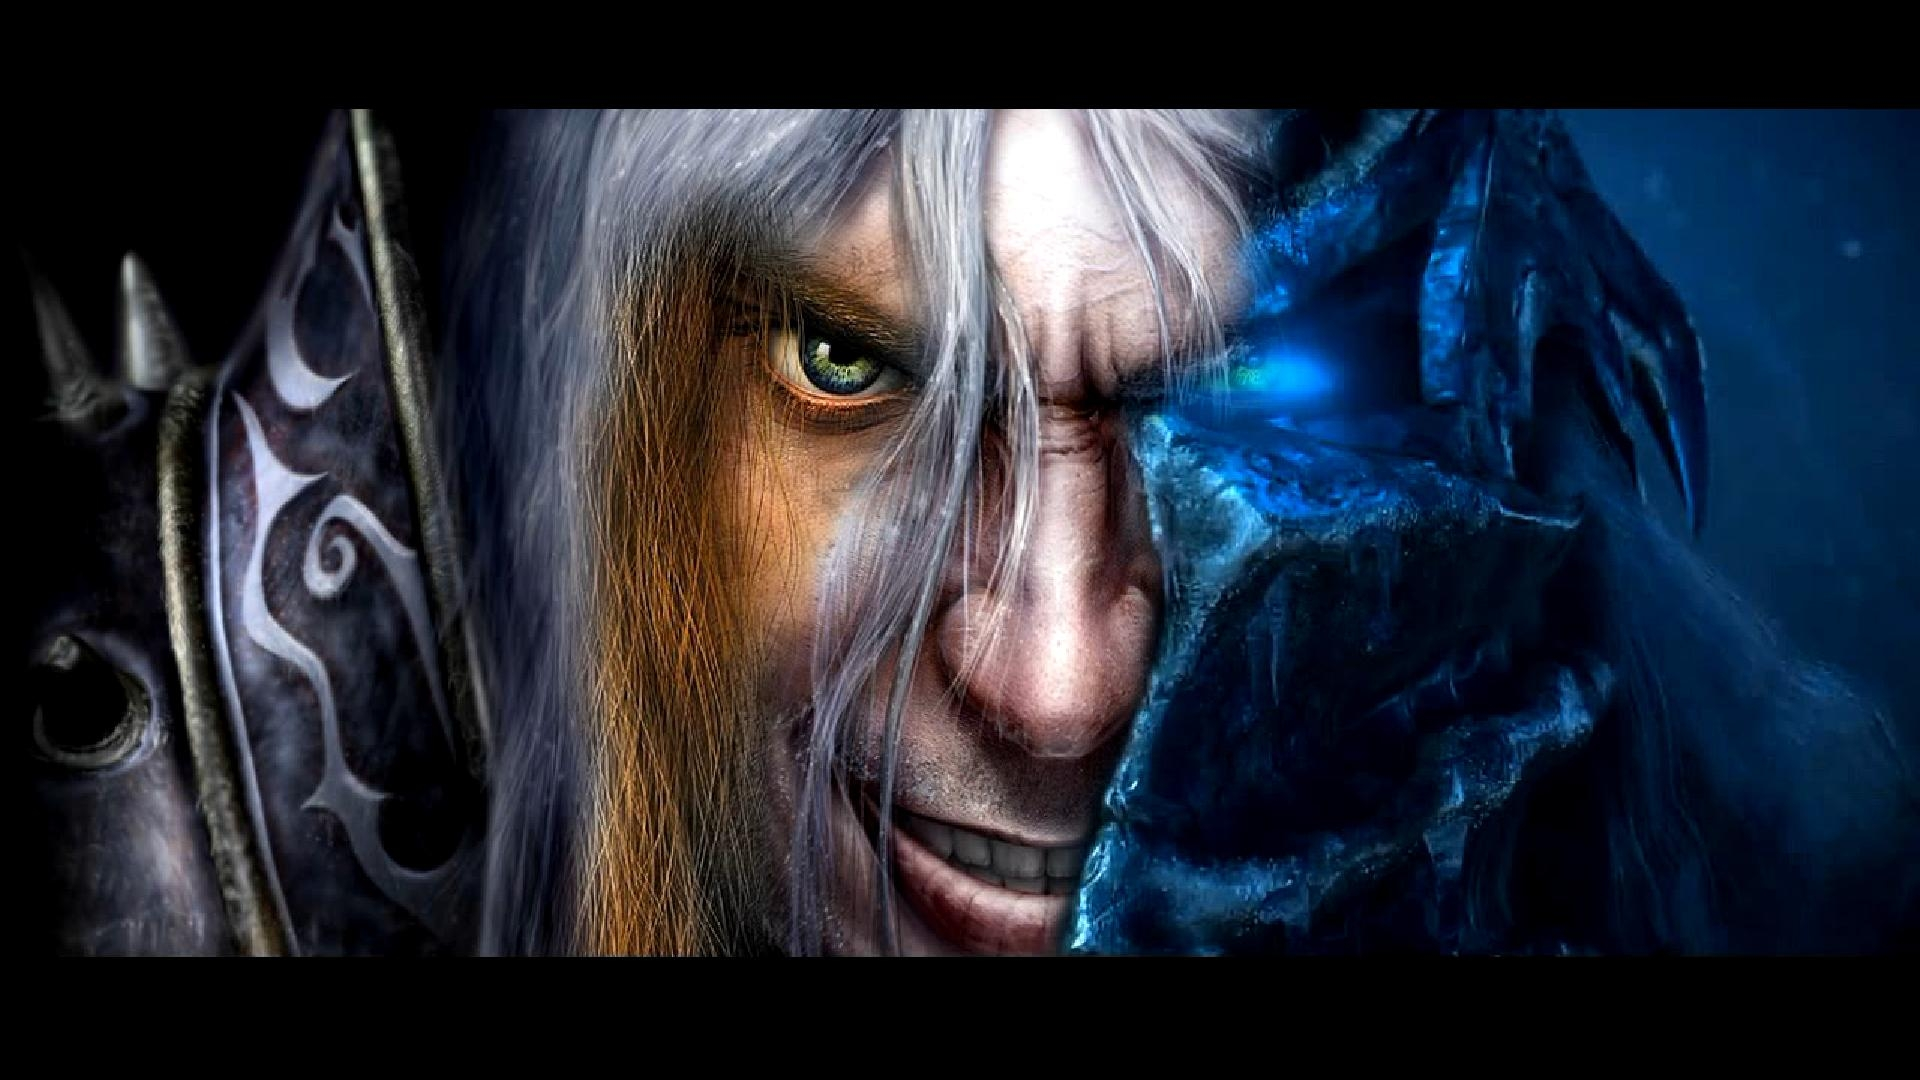 Fall Of The Lich King Wallpaper Download Wallpaper 1920x1080 Warcraft Lich King Arthas